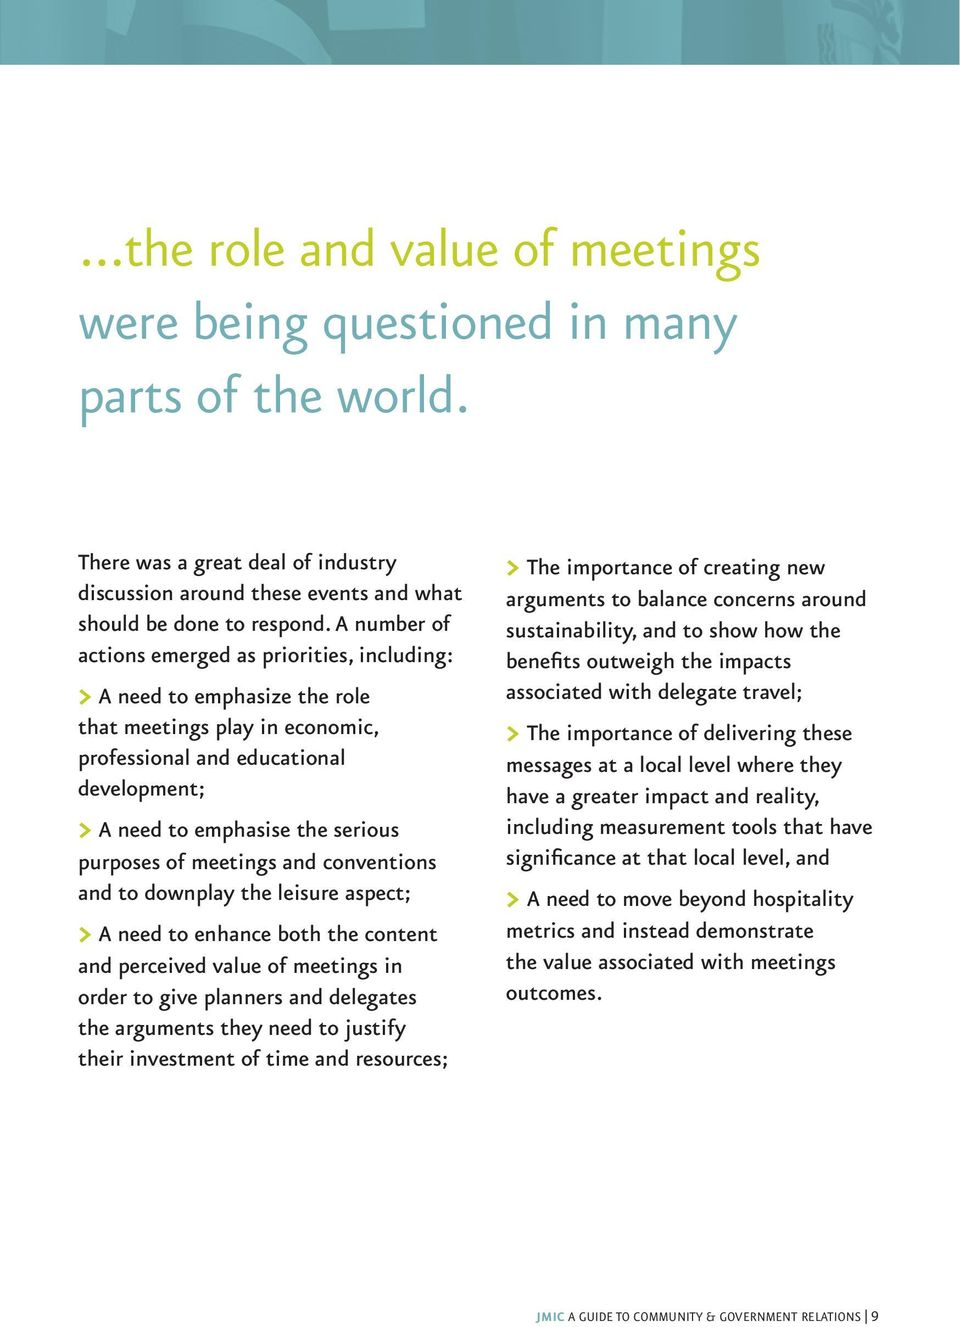 purposes of meetings and conventions and to downplay the leisure aspect; > A need to enhance both the content and perceived value of meetings in order to give planners and delegates the arguments